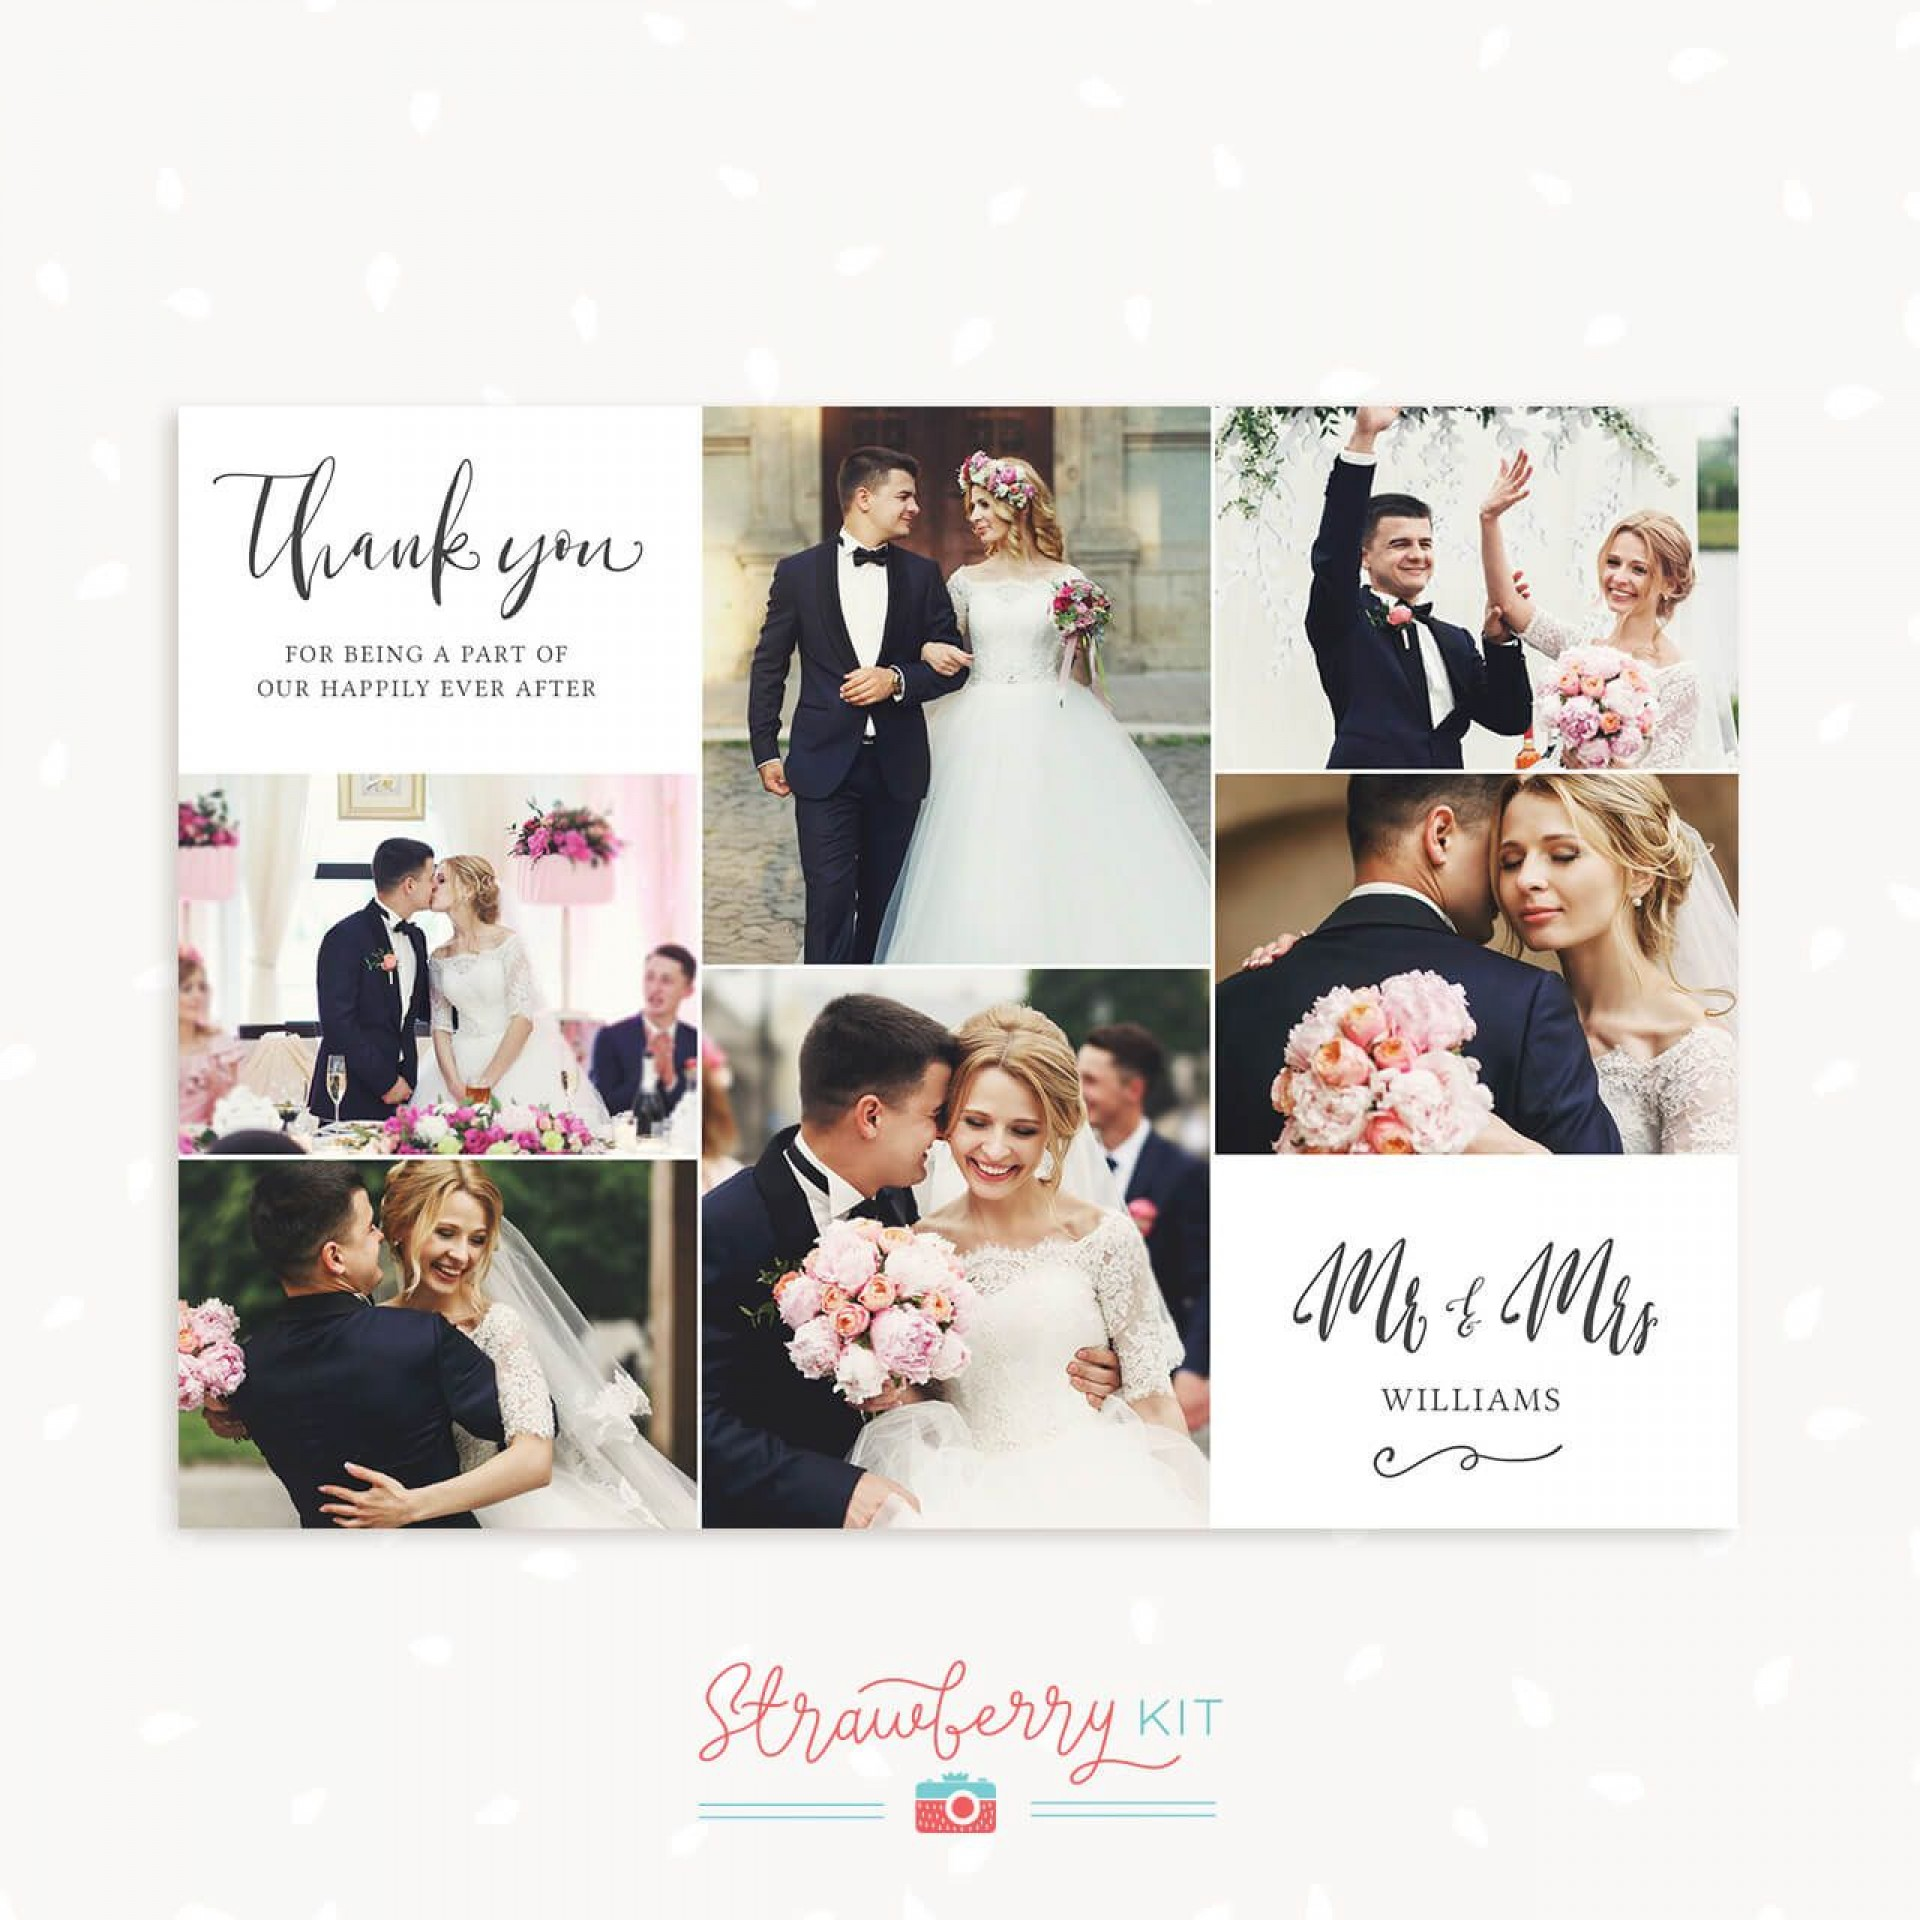 005 Excellent Wedding Thank You Card Template Idea  Message Sample Free Download Wording For Money1920